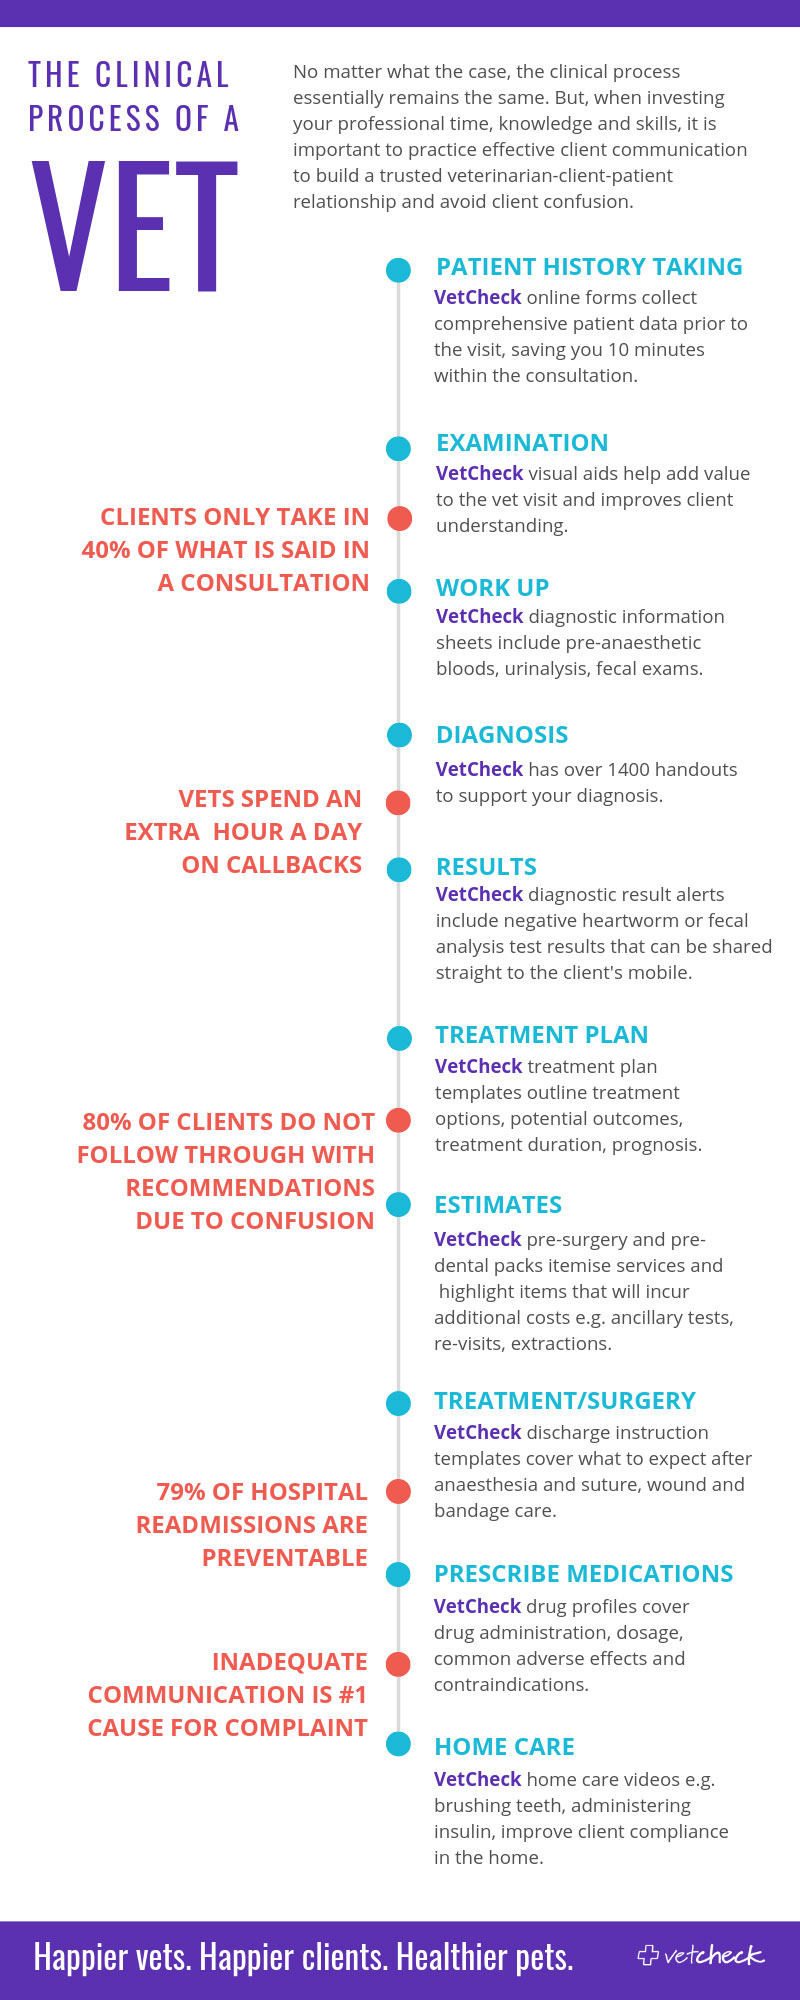 VetCheck infographic of the veterinary clinical process